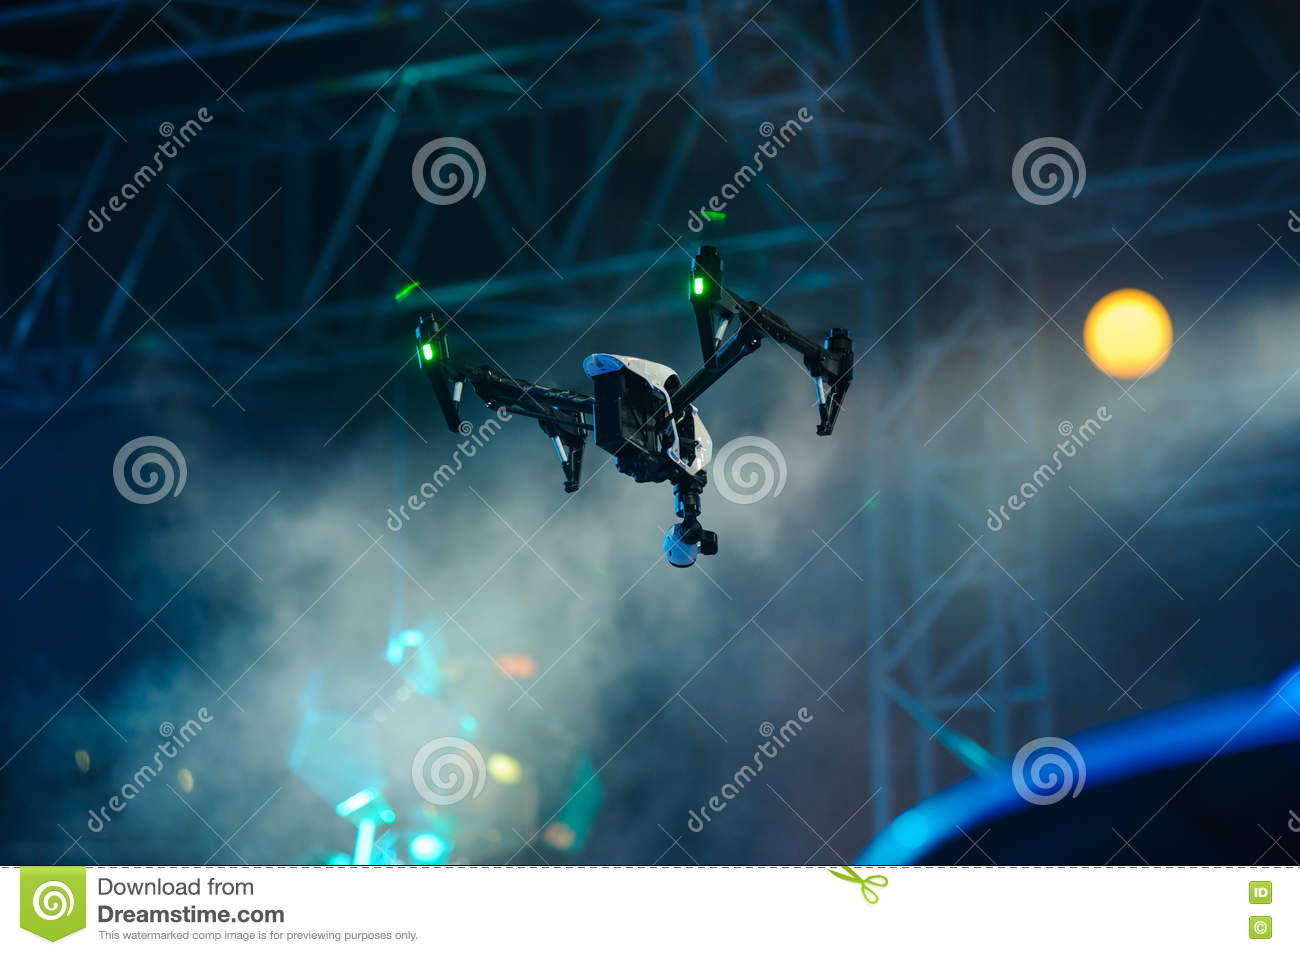 Hovering drone with camera on stage